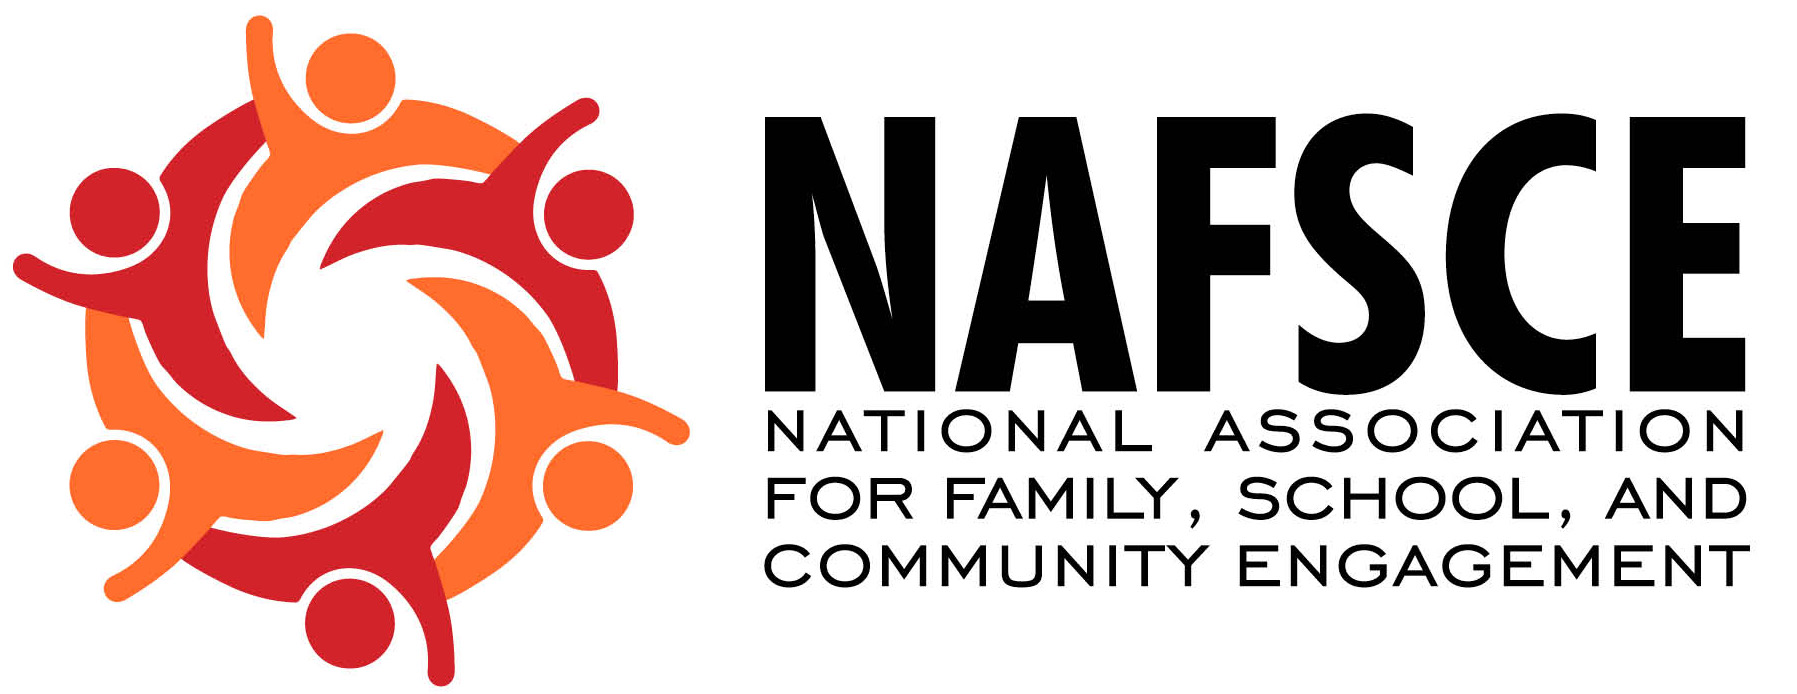 NAFSCE Members get a 20% discount on our summer coaching progamming. - You will be asked during the intake and invoicing process.